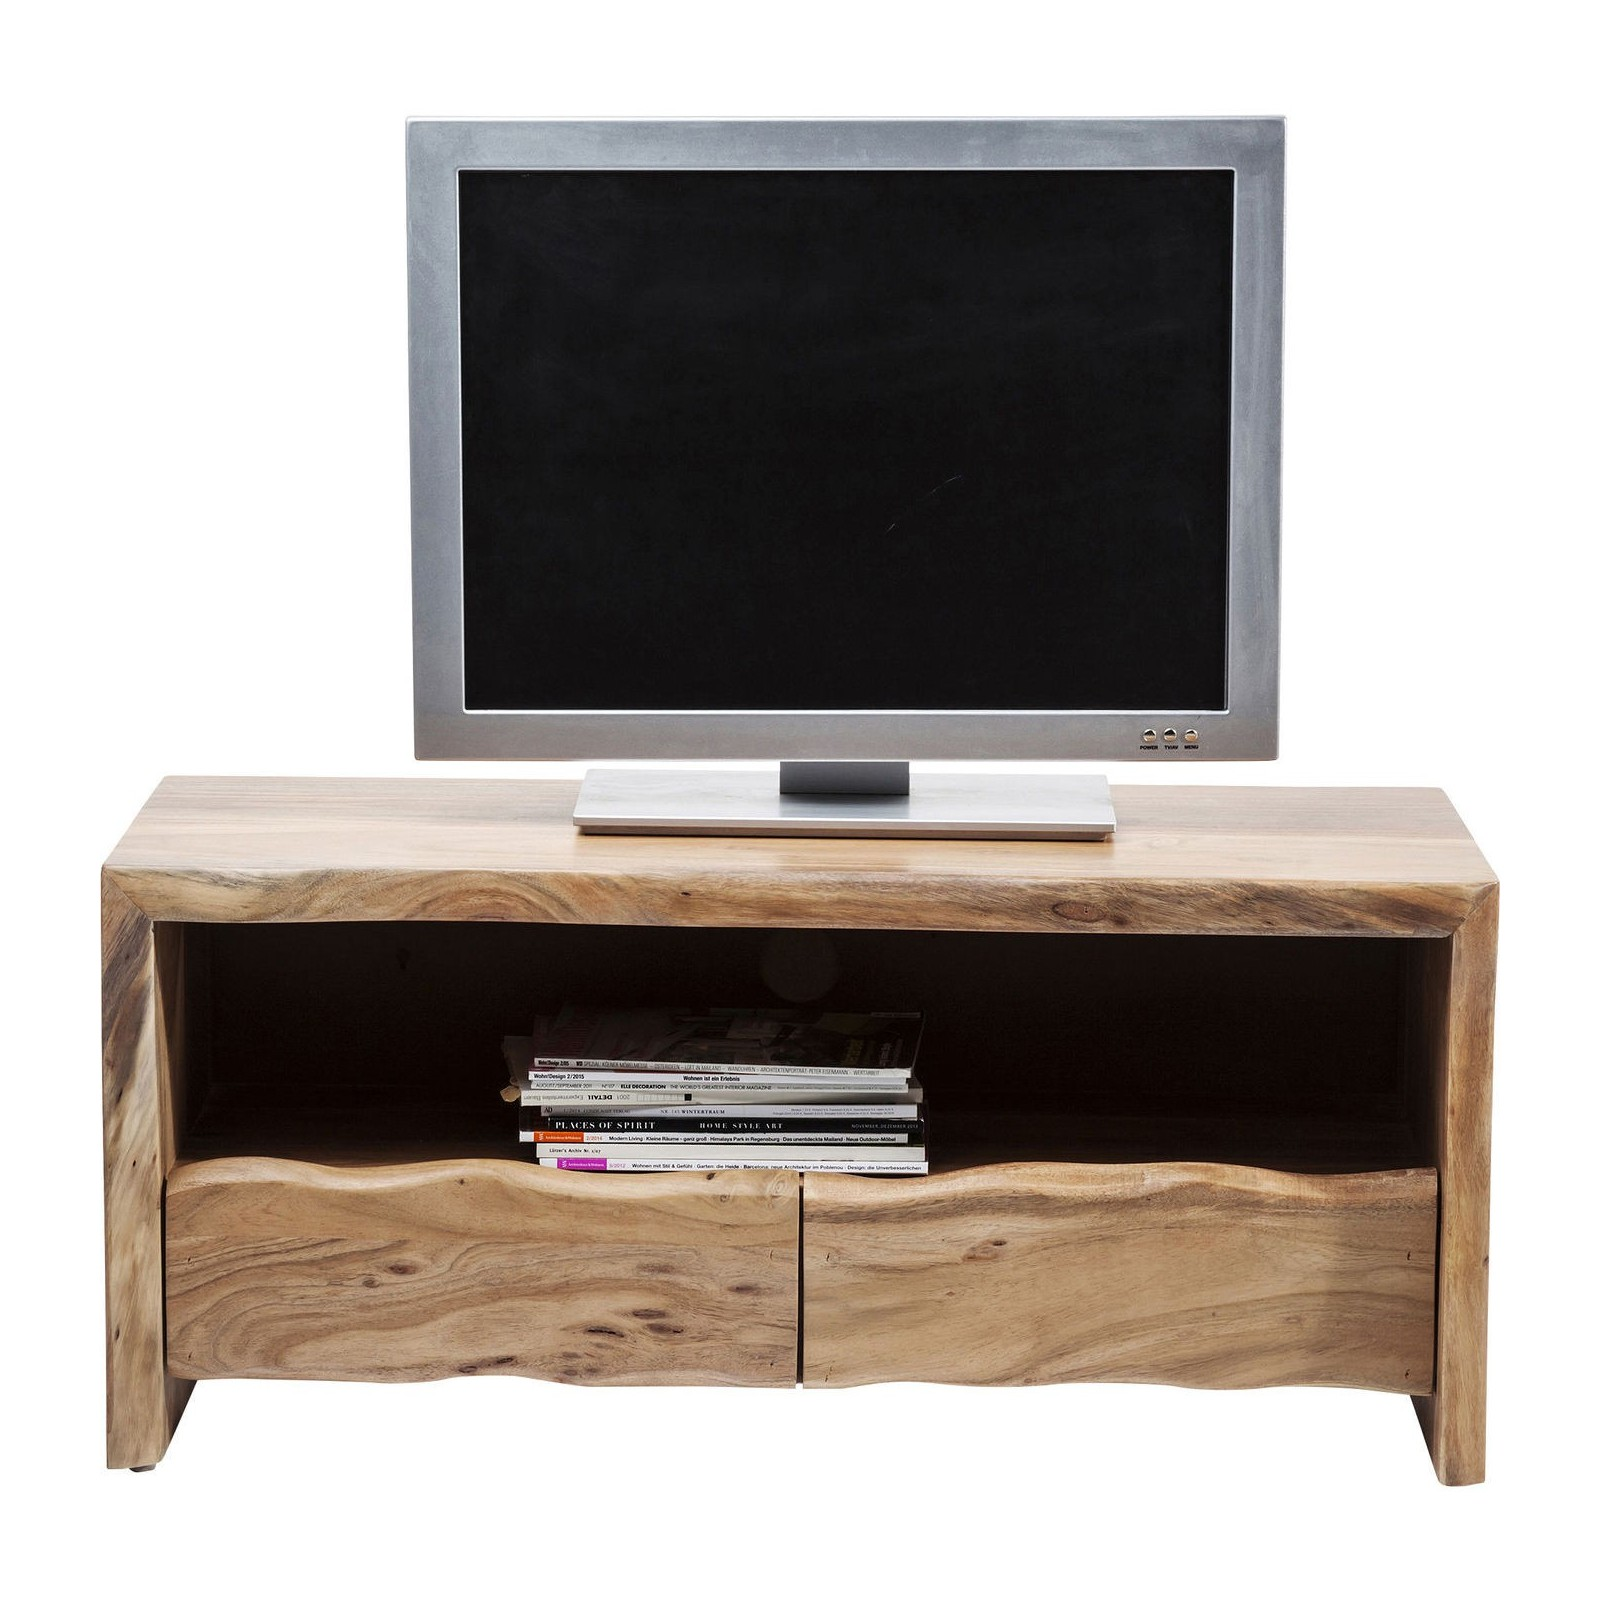 Meuble tv scandinave en bois pure nature kare design for Meuble tv 30 cm